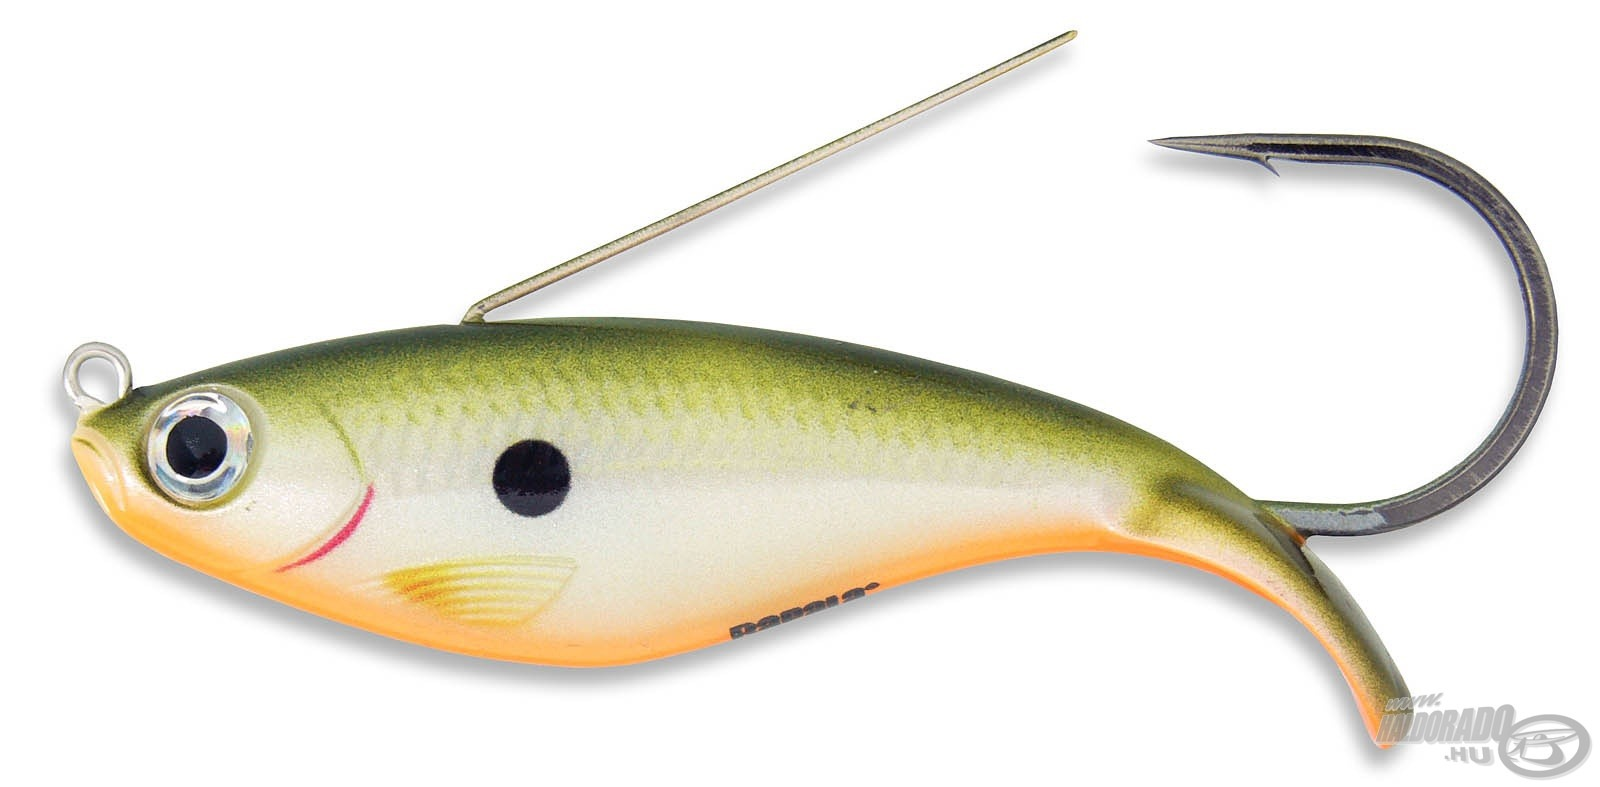 Rapala, |, Weedless, Shad 2590Ft, helyett, 1990Ft